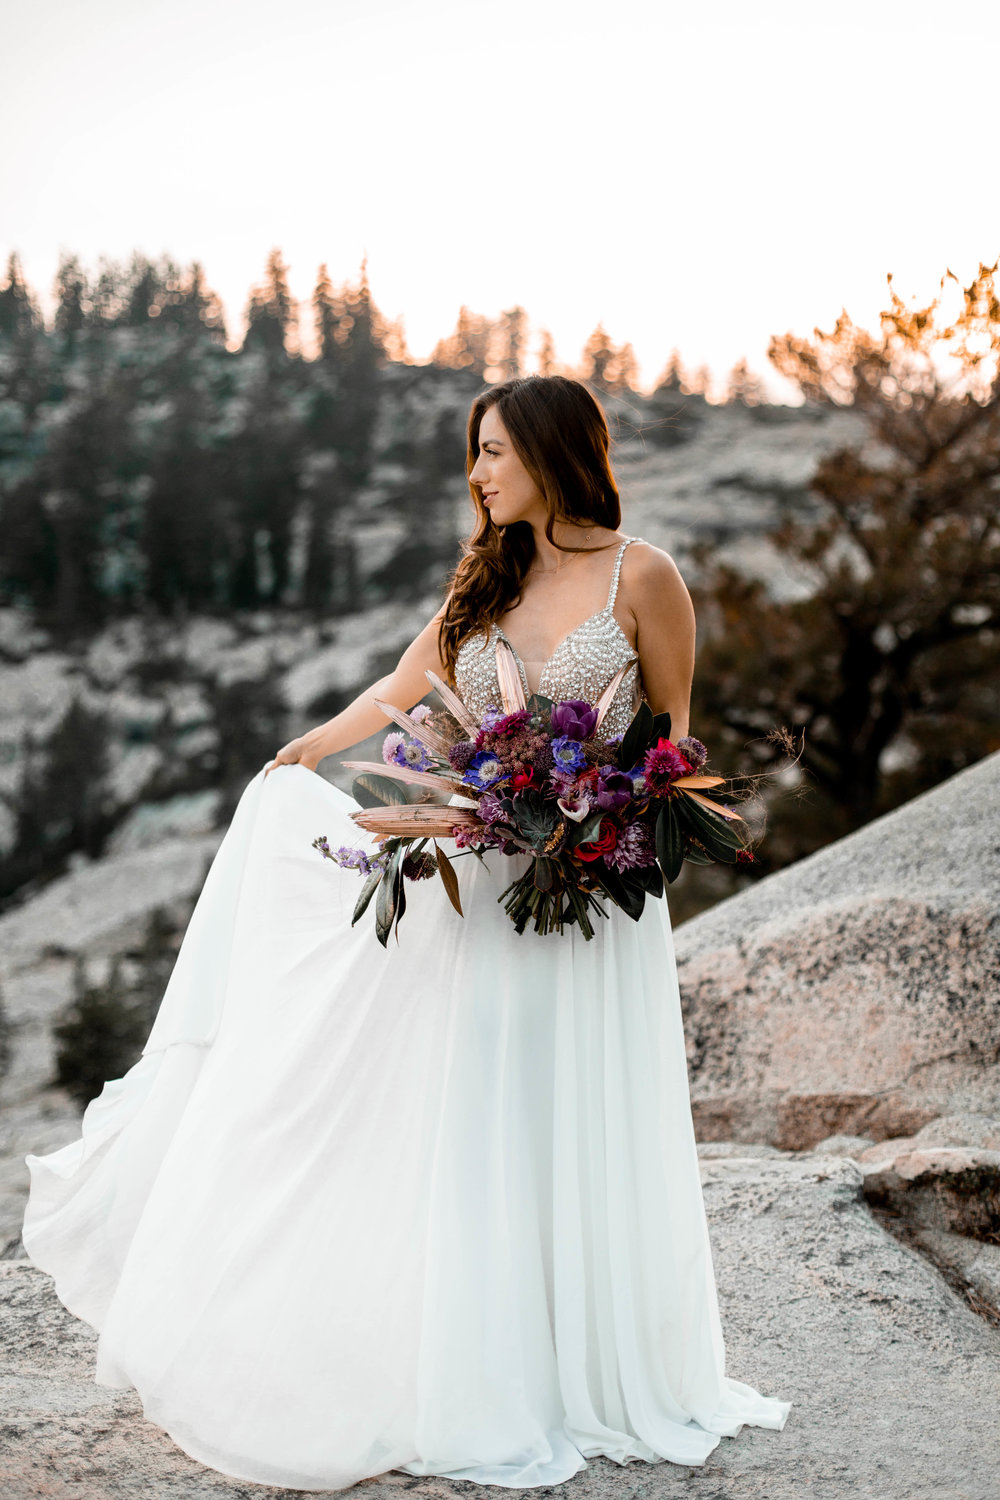 nicole-daacke-photography-yosemite-national-park-wedding-sunset-elopement-olmstead-point-yosemite-adventure-wedding-photographer-adventurous-elopement-destination-wedding-national-park-wedding-photography-1380.jpg